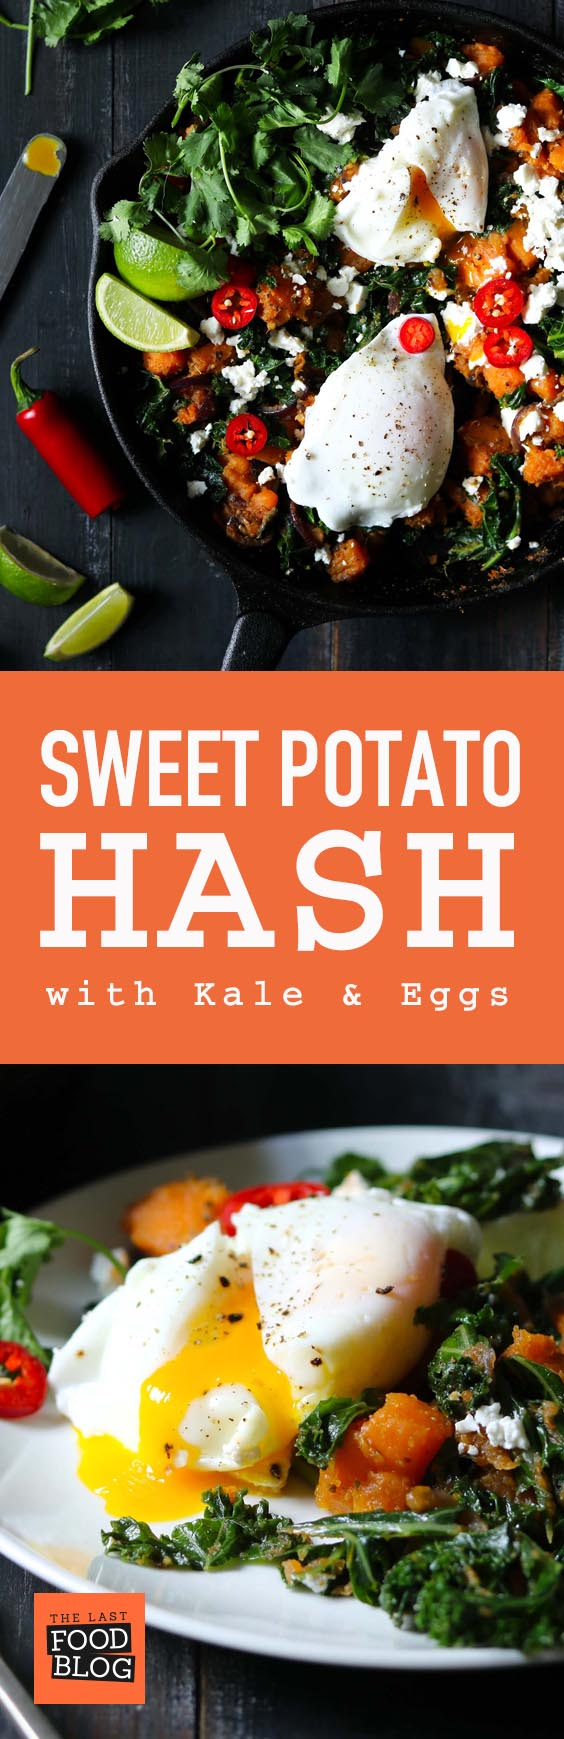 Sweet Potato Hash with Kale & Eggs - thelastfoodblog.com